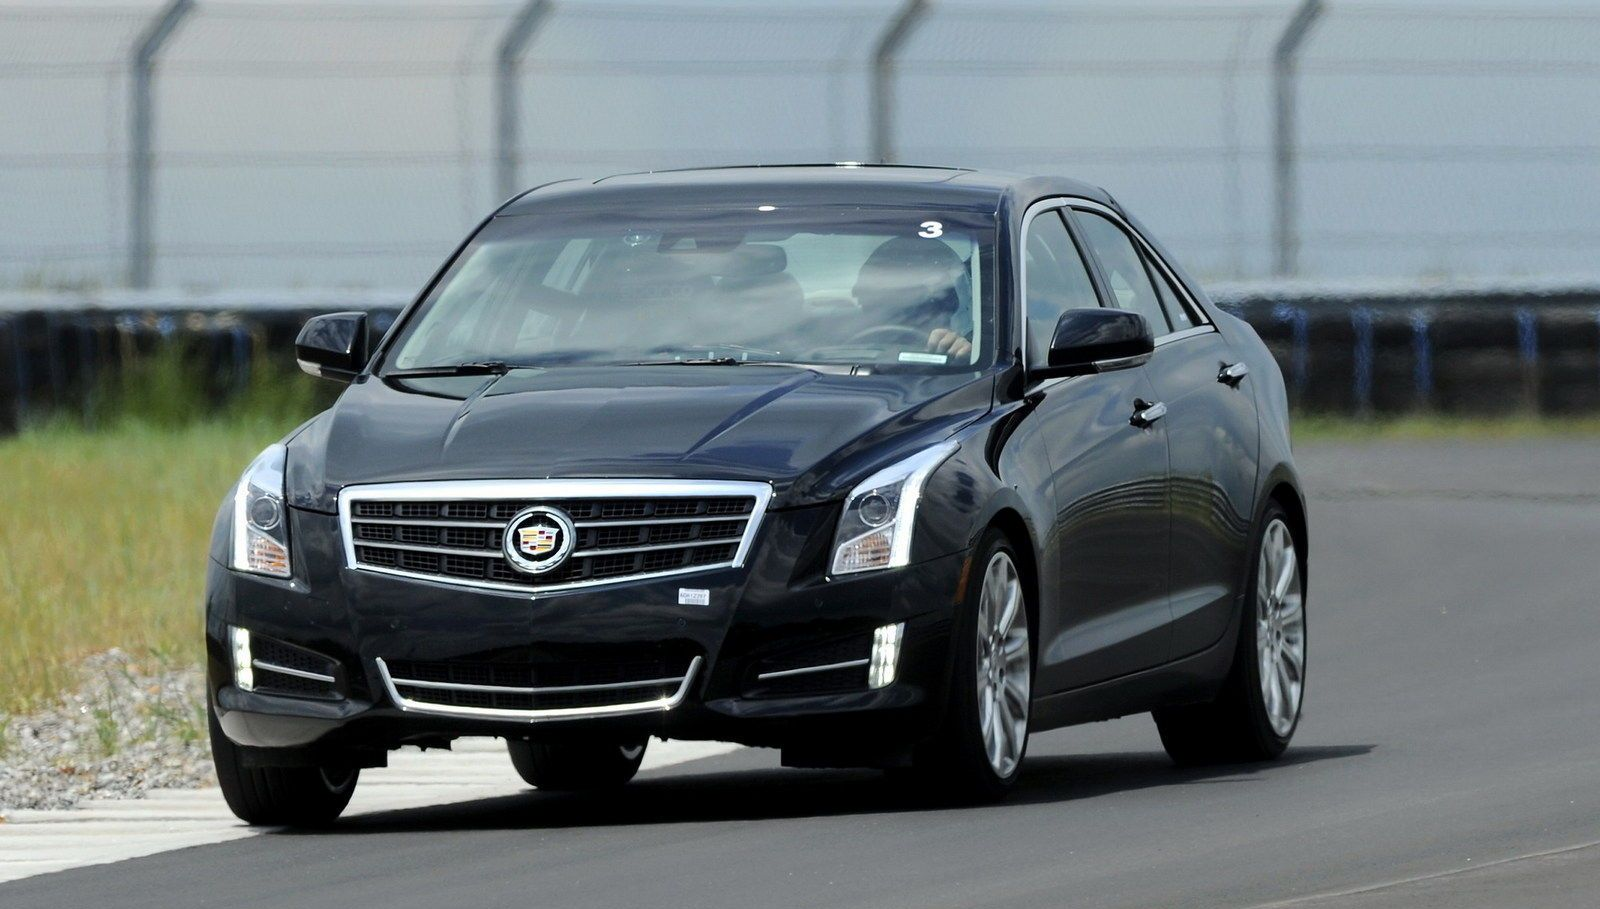 2014 cadillac ats coupe apps directories. Cars Review. Best American Auto & Cars Review